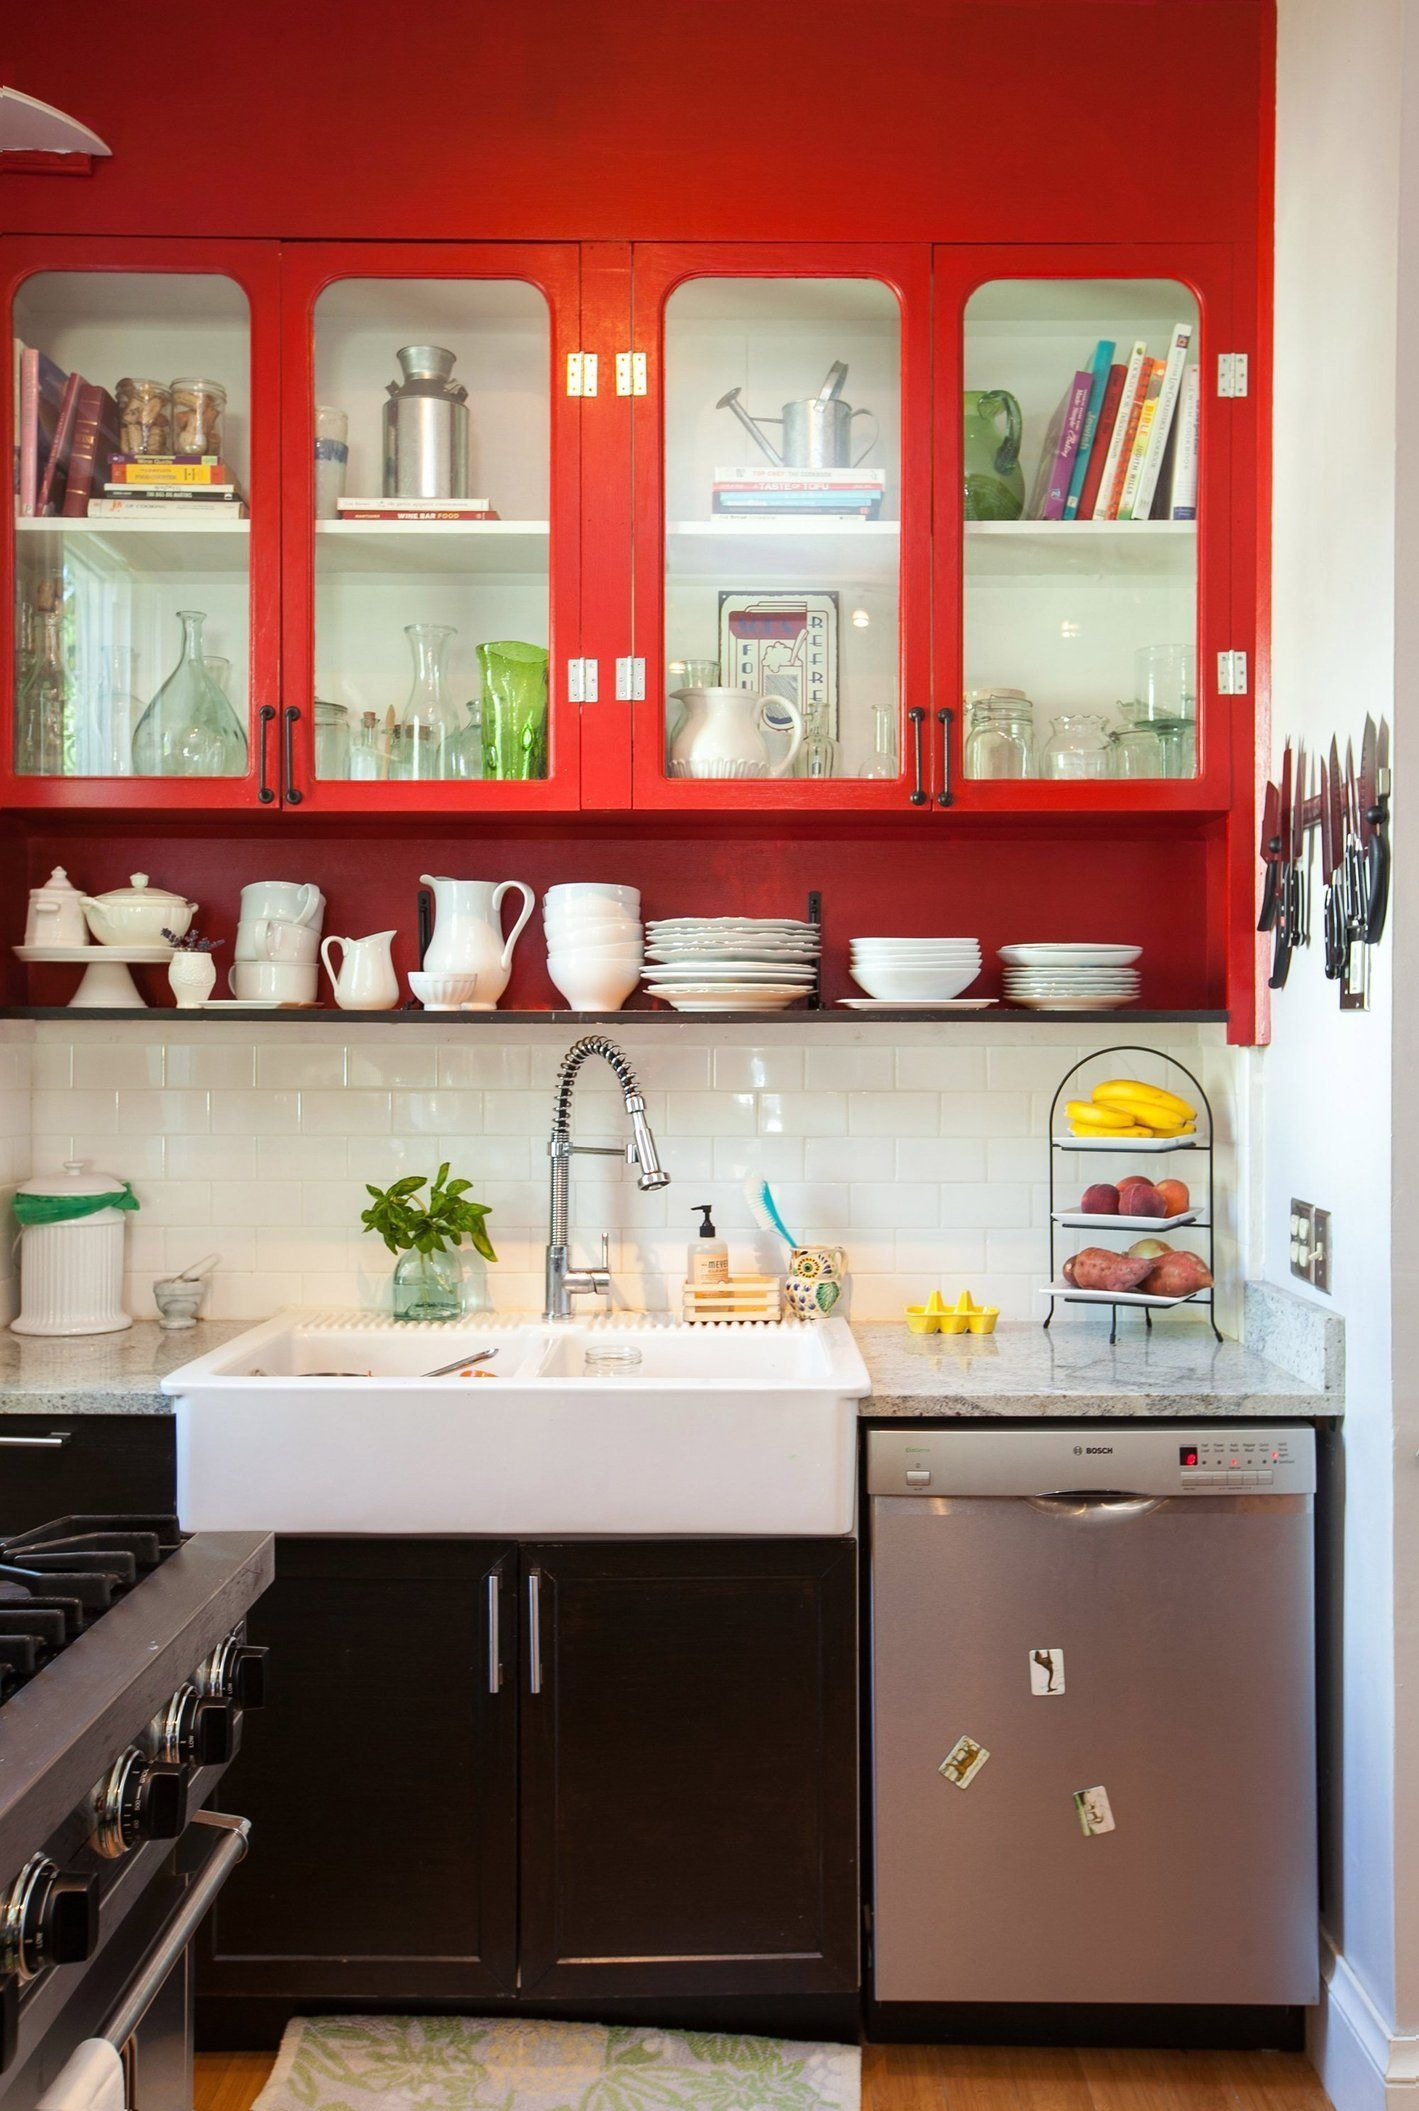 Our Master Kitchen Cleaning List: 30 Lessons & Smart Tips for Cleaning Every Part of Your Kitchen